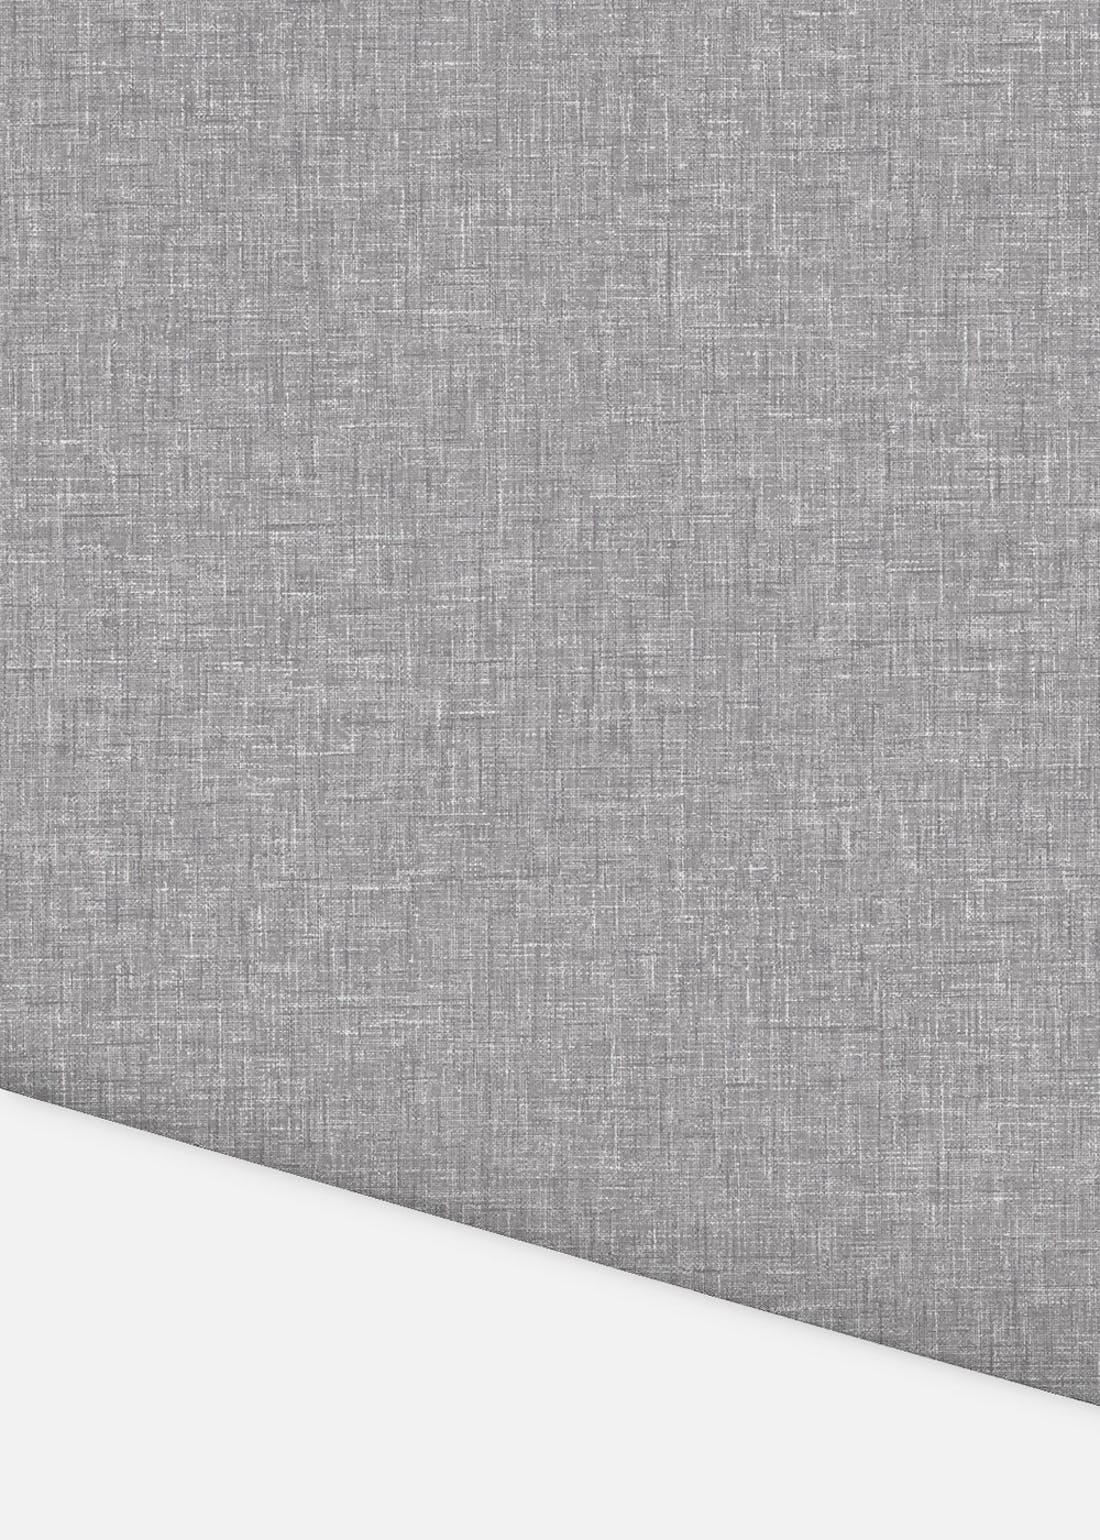 Arthouse Linen Texture Grey Wallpaper (10.05m x 53cm)